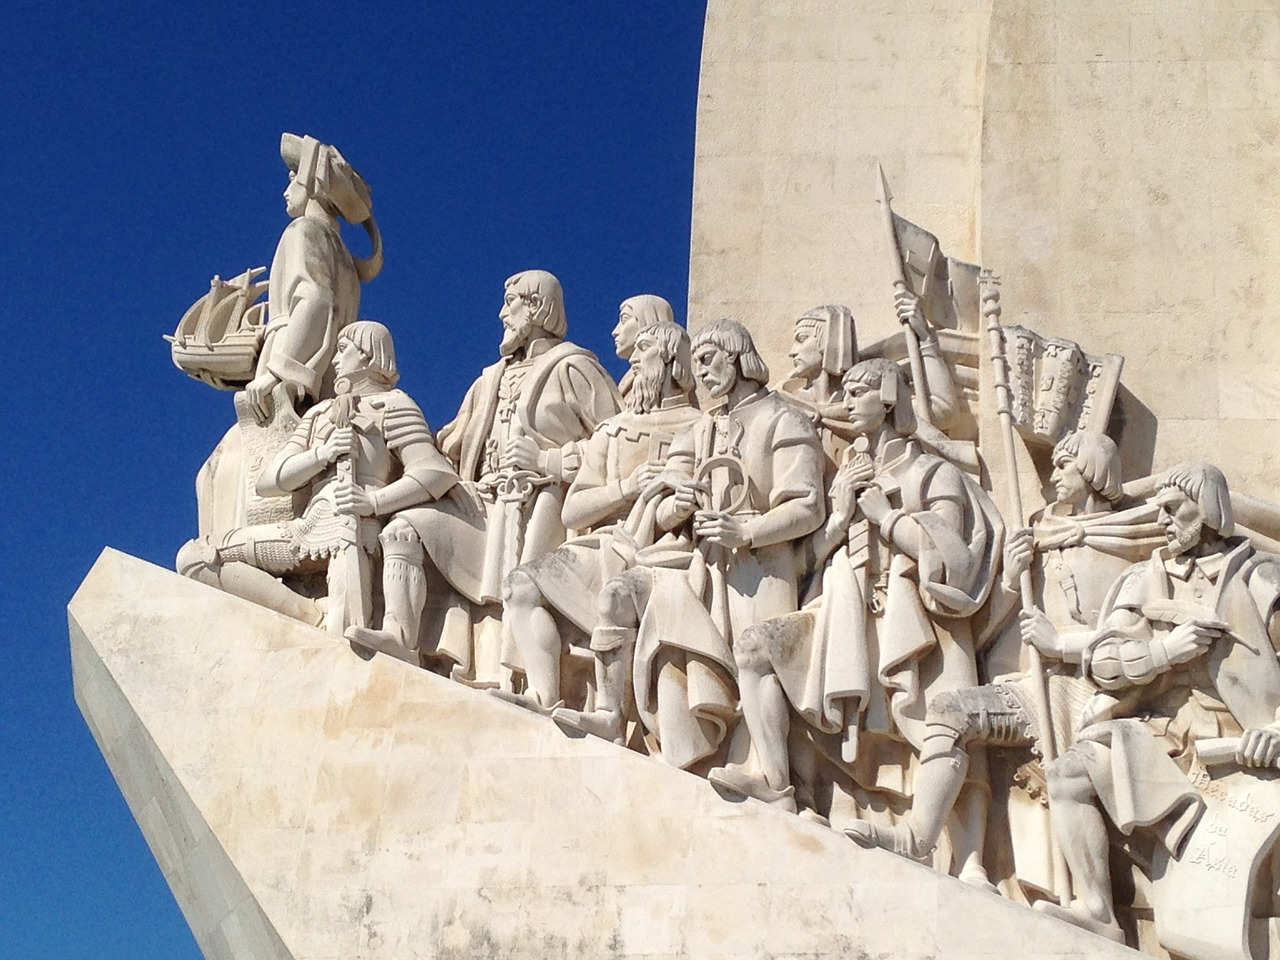 The Monument to the Discoveries, Lisbvon